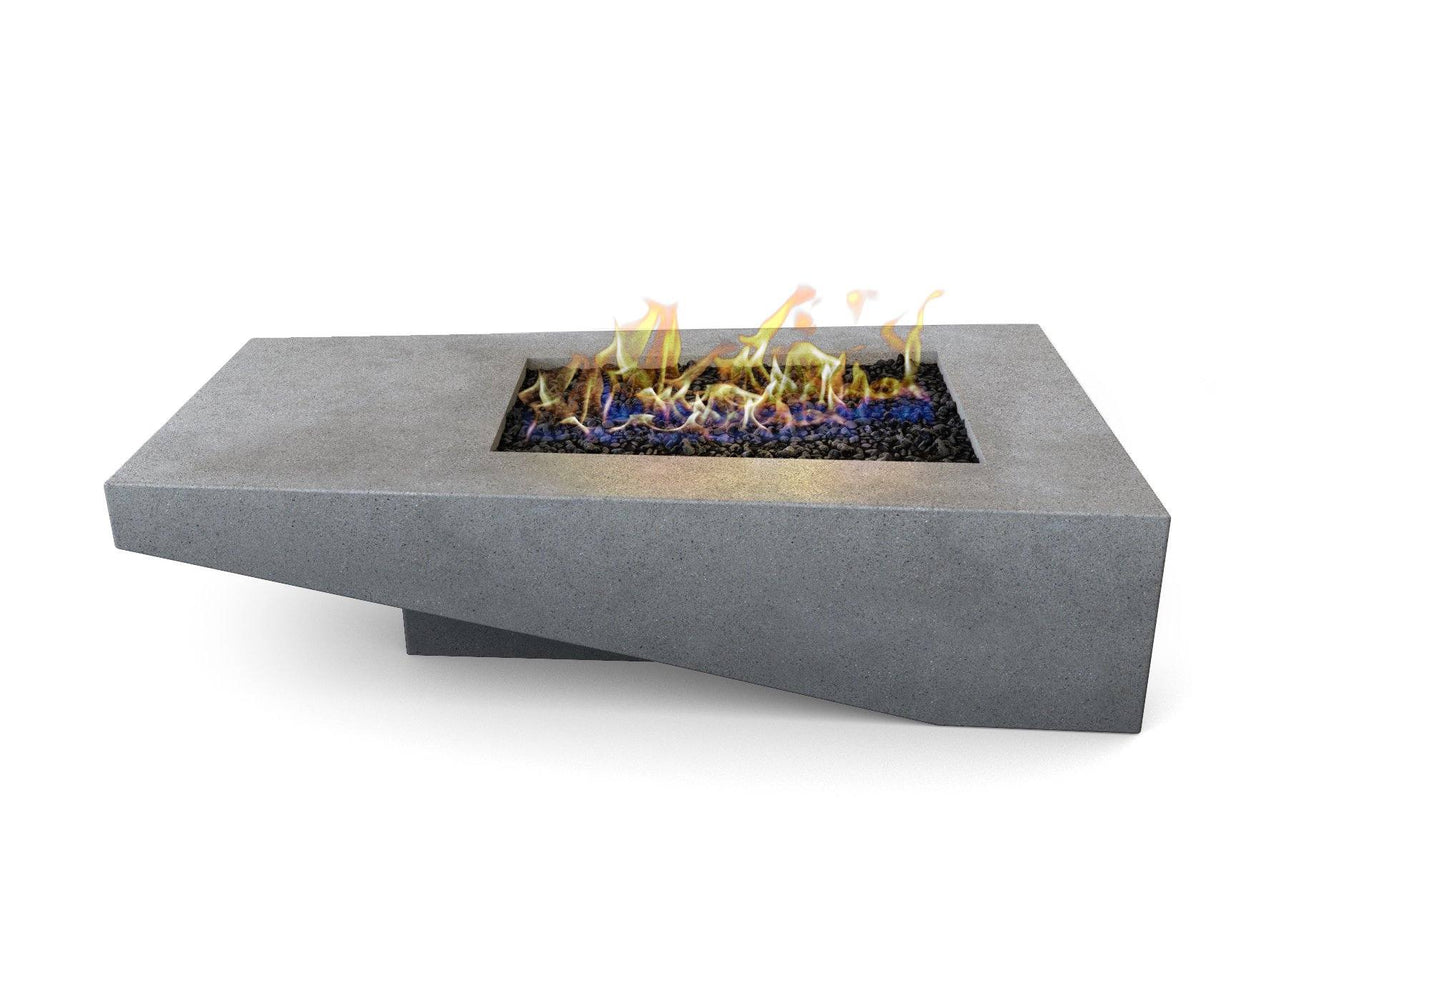 Atlas Concrete Fire Pit Table By Nisho - Nisho